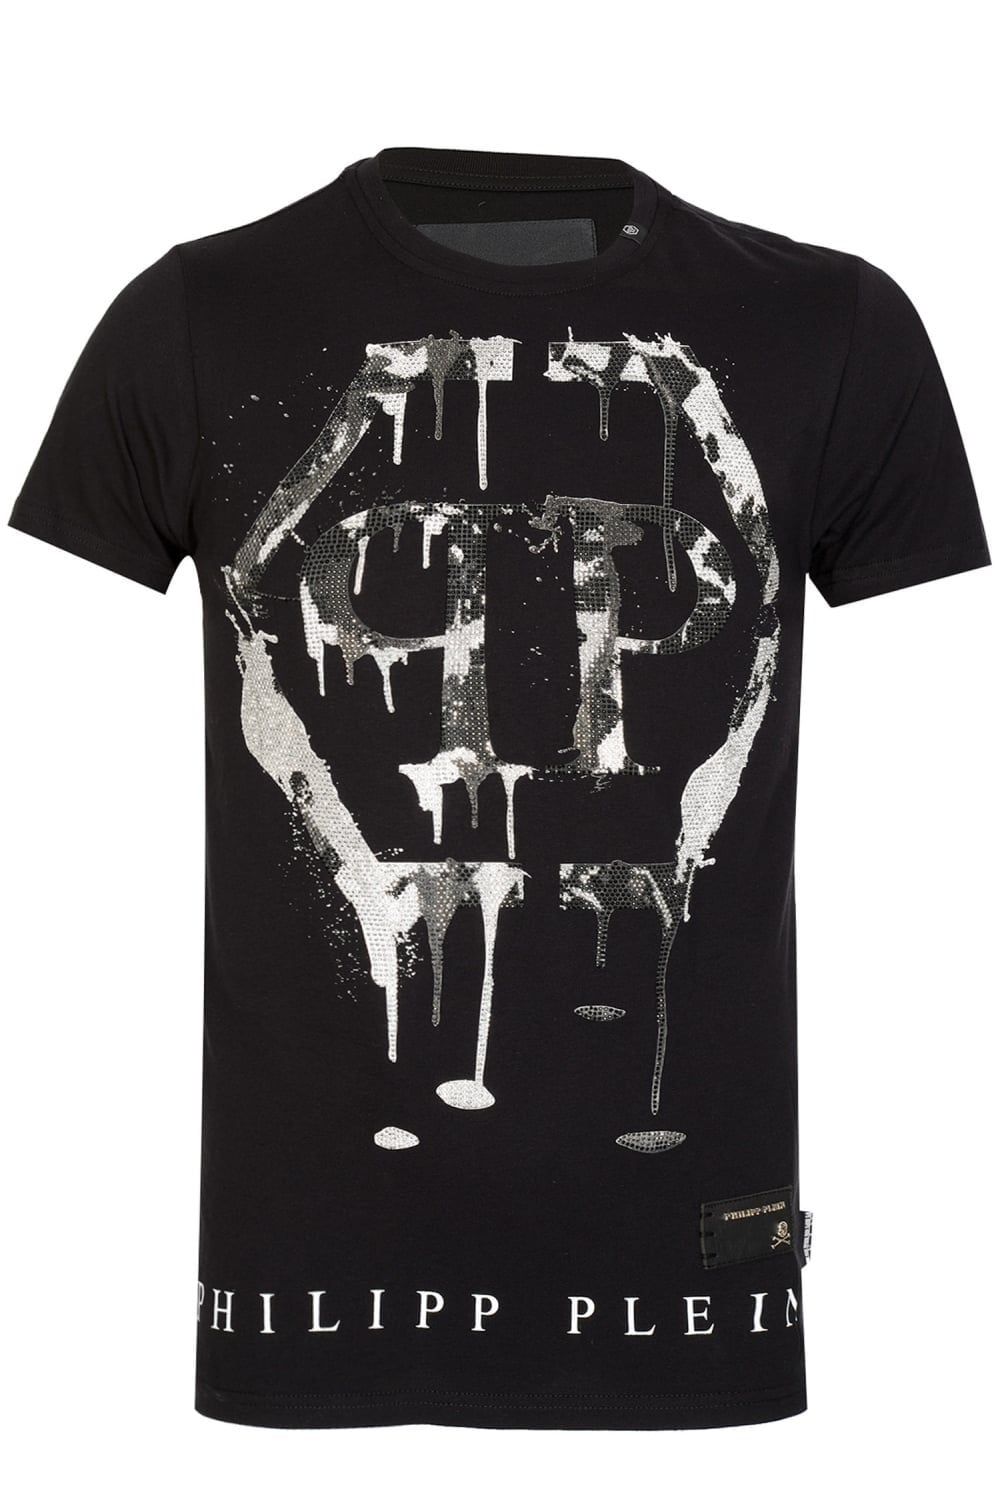 754dcaaf253 PHILIPP PLEIN Mind Hex Logo T-shirt Black - Clothing from Circle Fashion UK